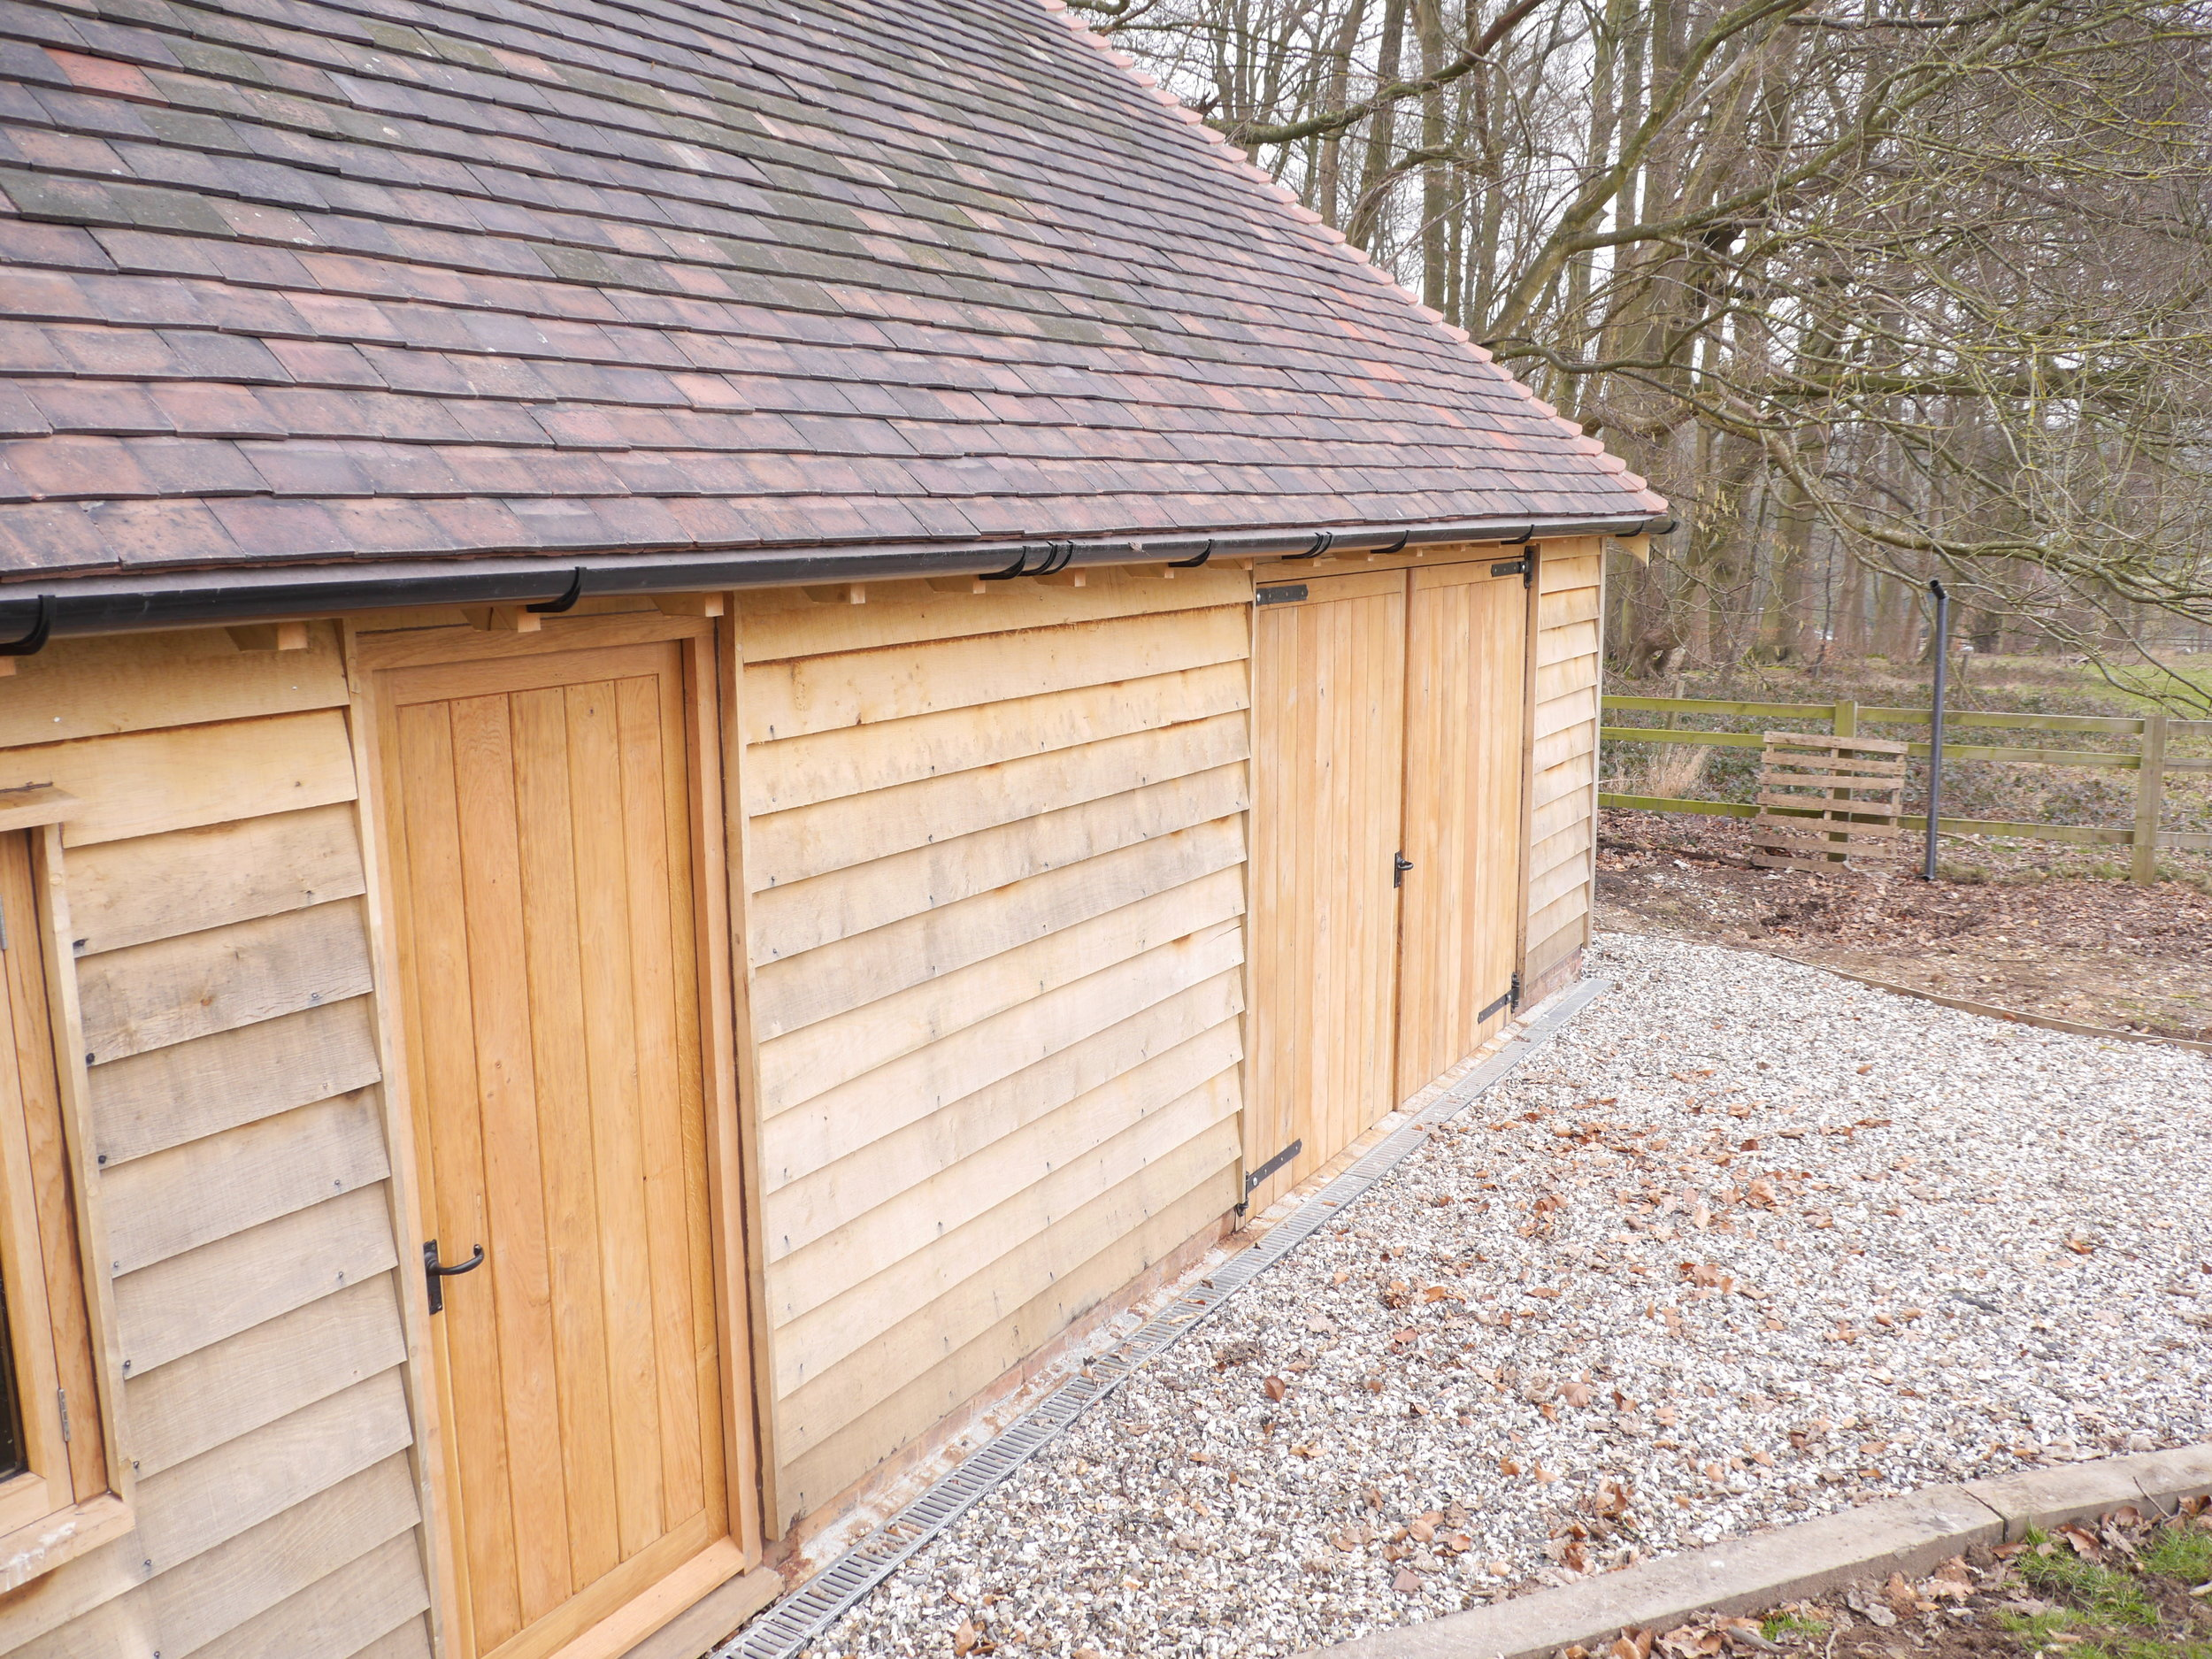 oak framed garage, oak framed garden store